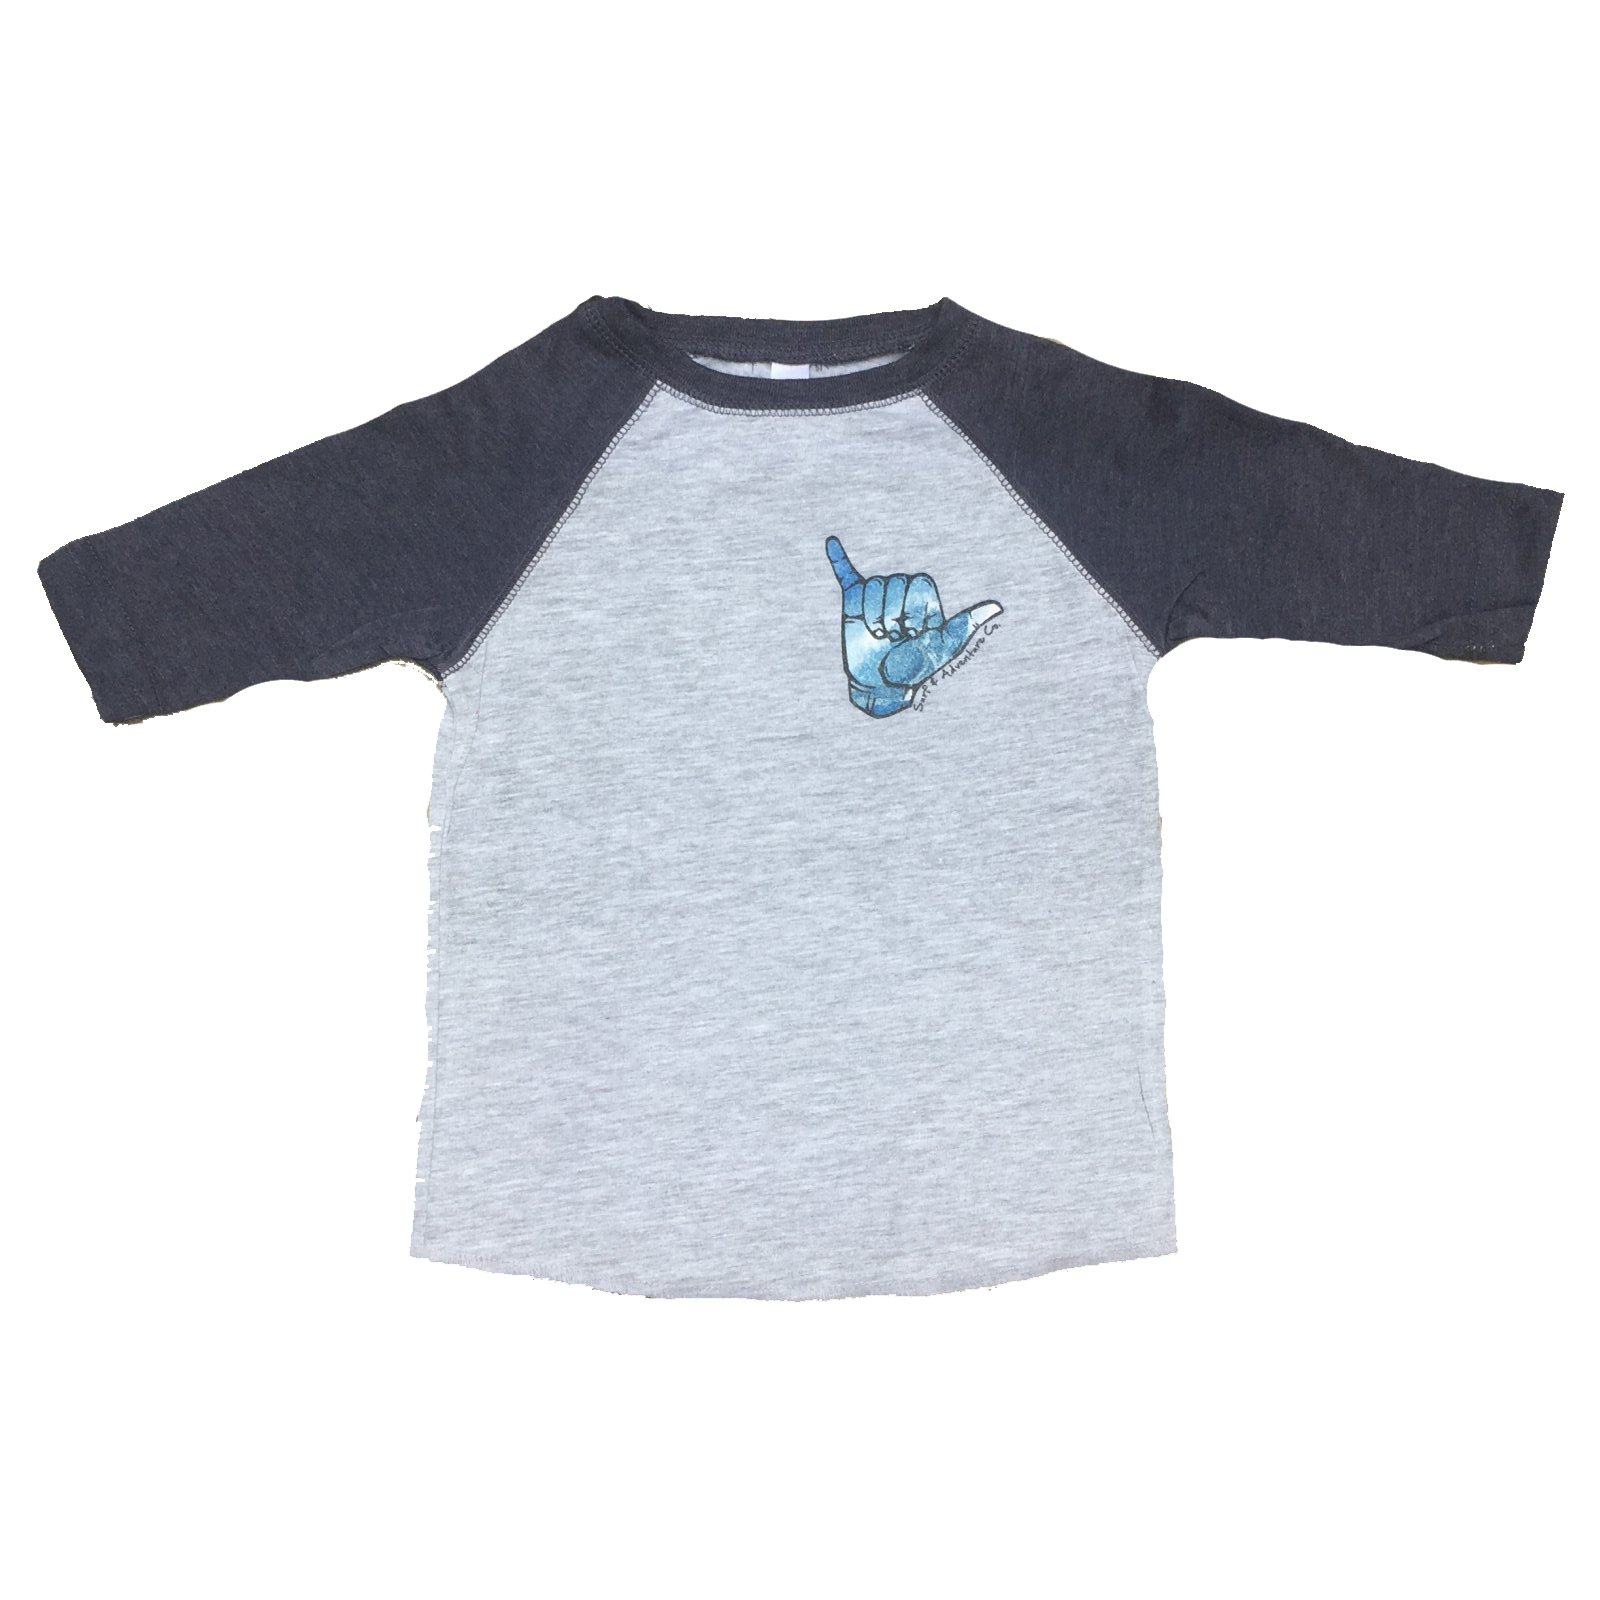 Hang Loose Baseball Youth Tee